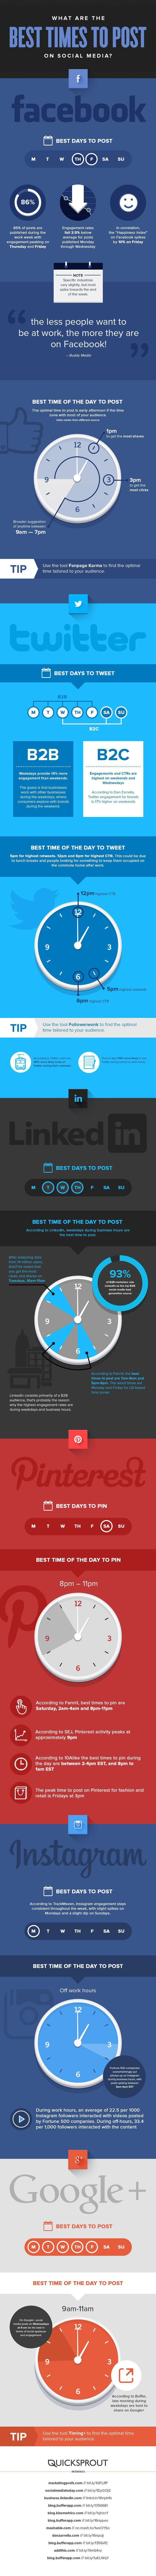 Helpful information about posting during peak times on social media sites like Facebook. This will come in handy when I create my Facebook page for my brand.